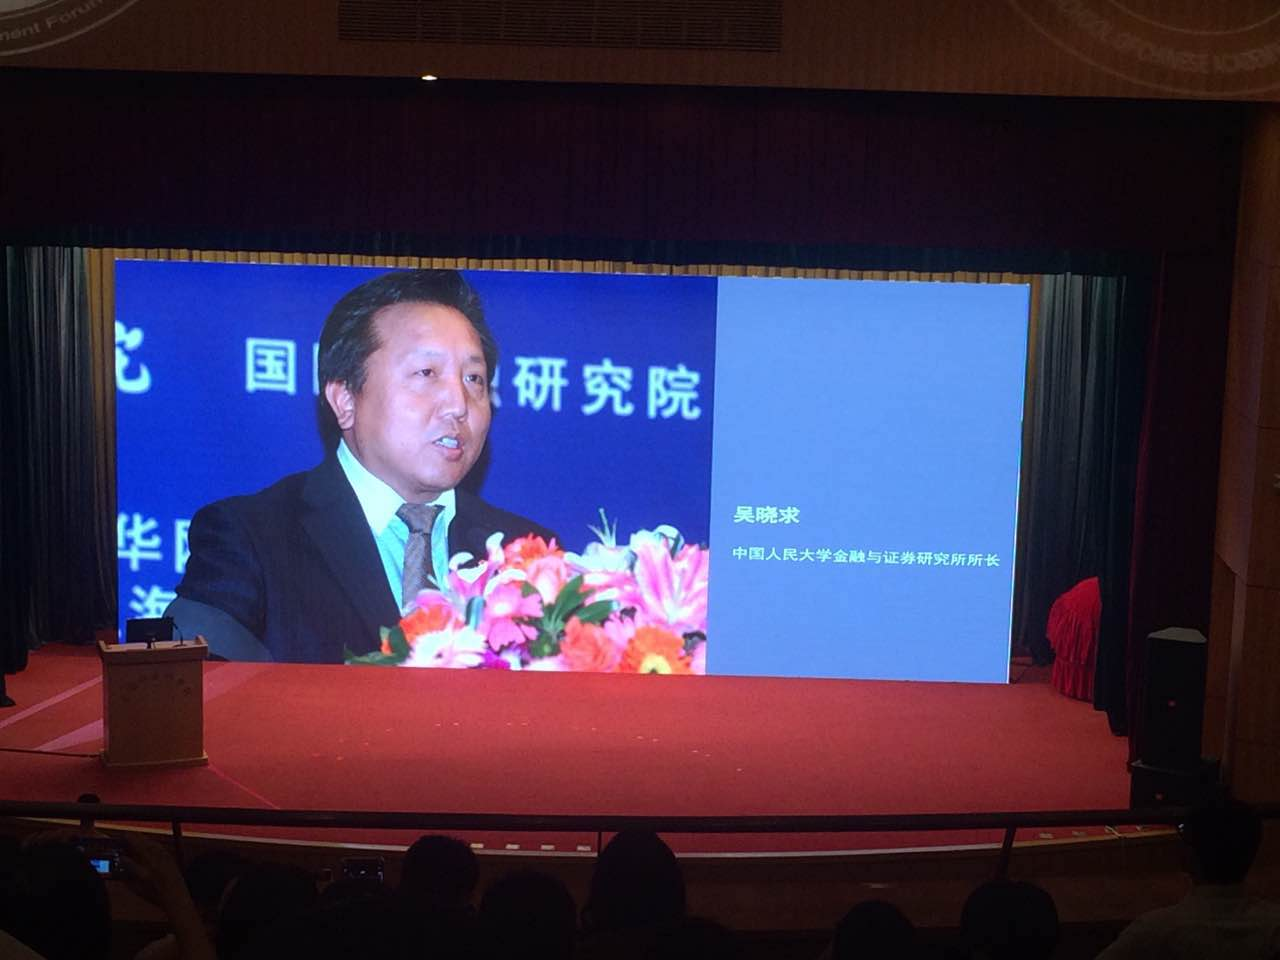 The 16th China MBA Development Forum